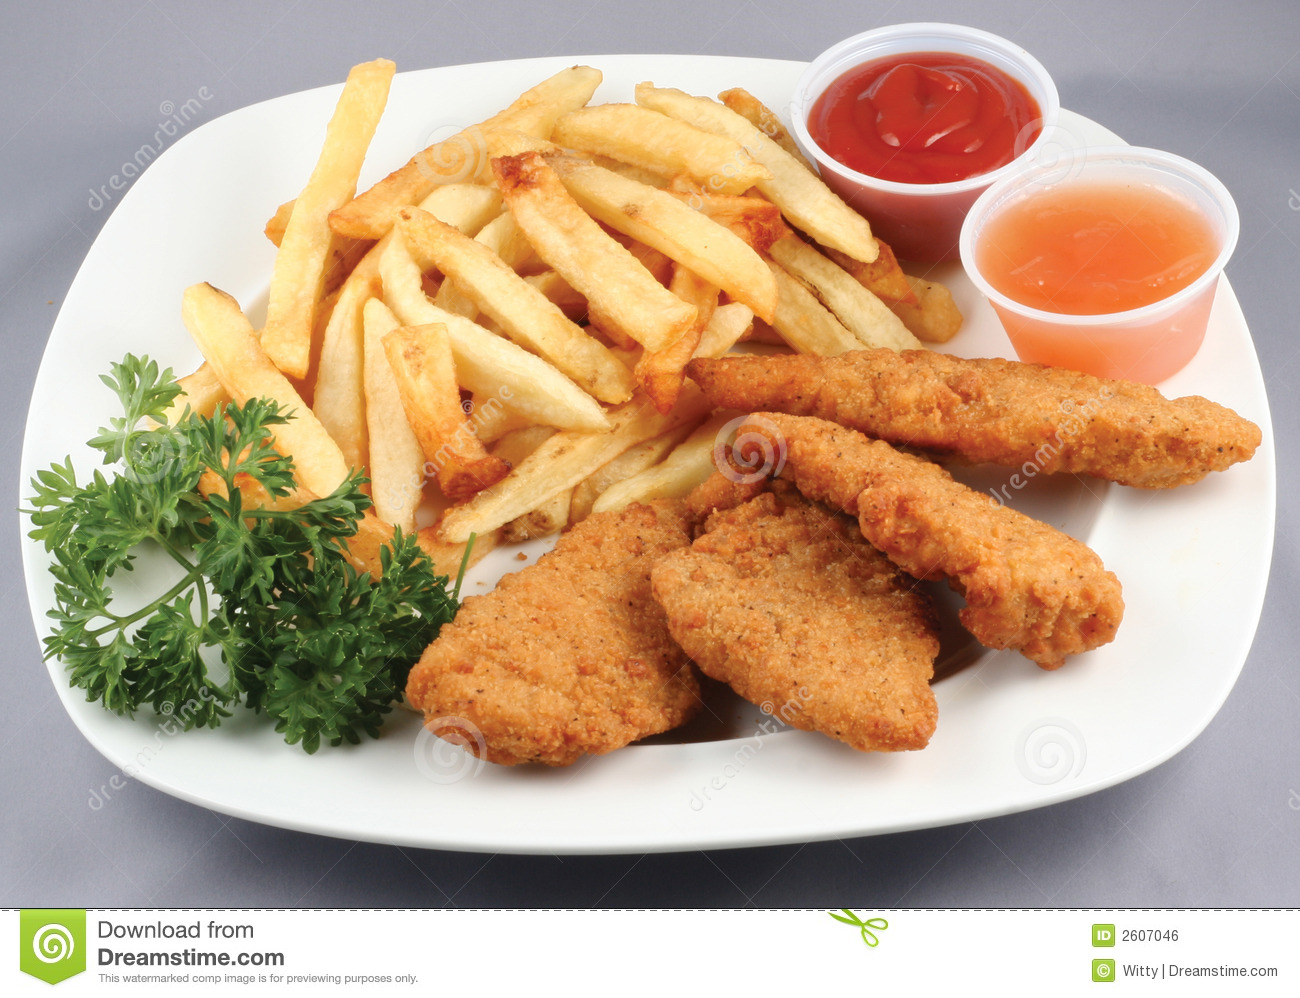 Chicken Strips And Fries Combo Royalty Free Stock Image - Image ...